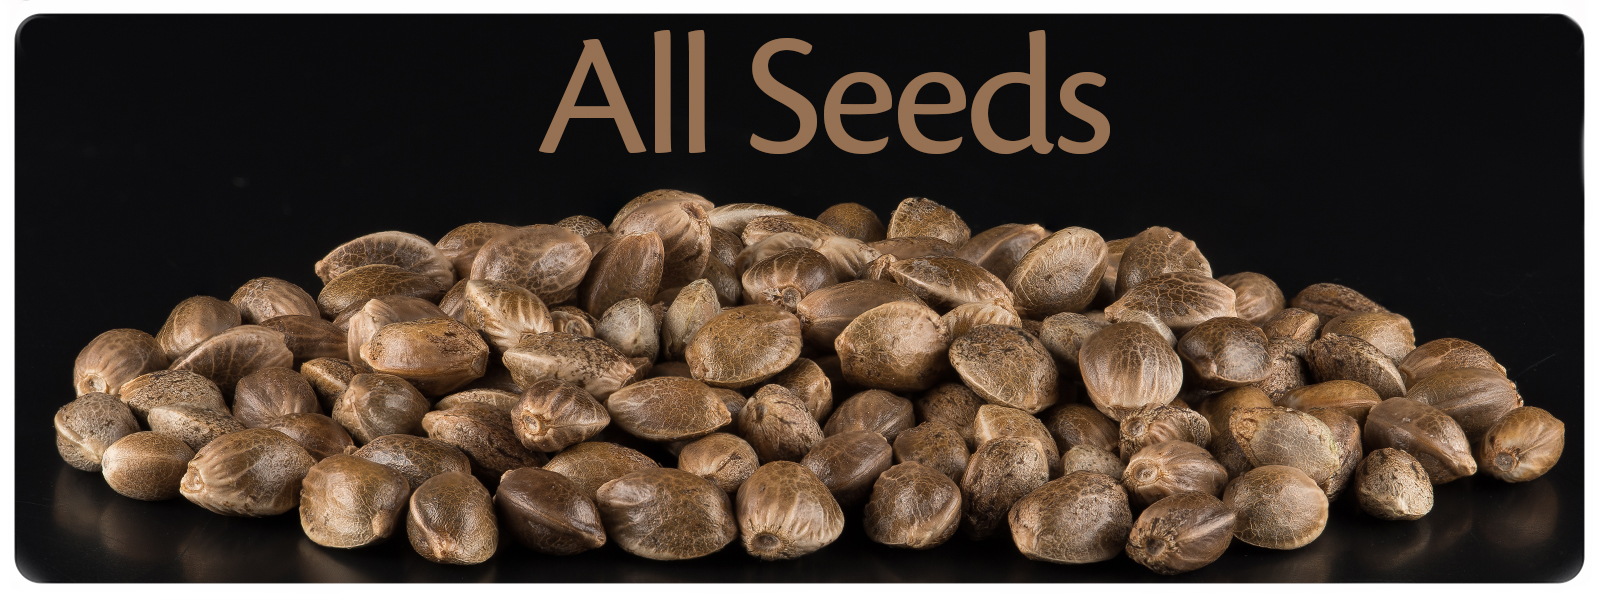 Here you can find all te cannabis seeds that are for sale in sanniesshop